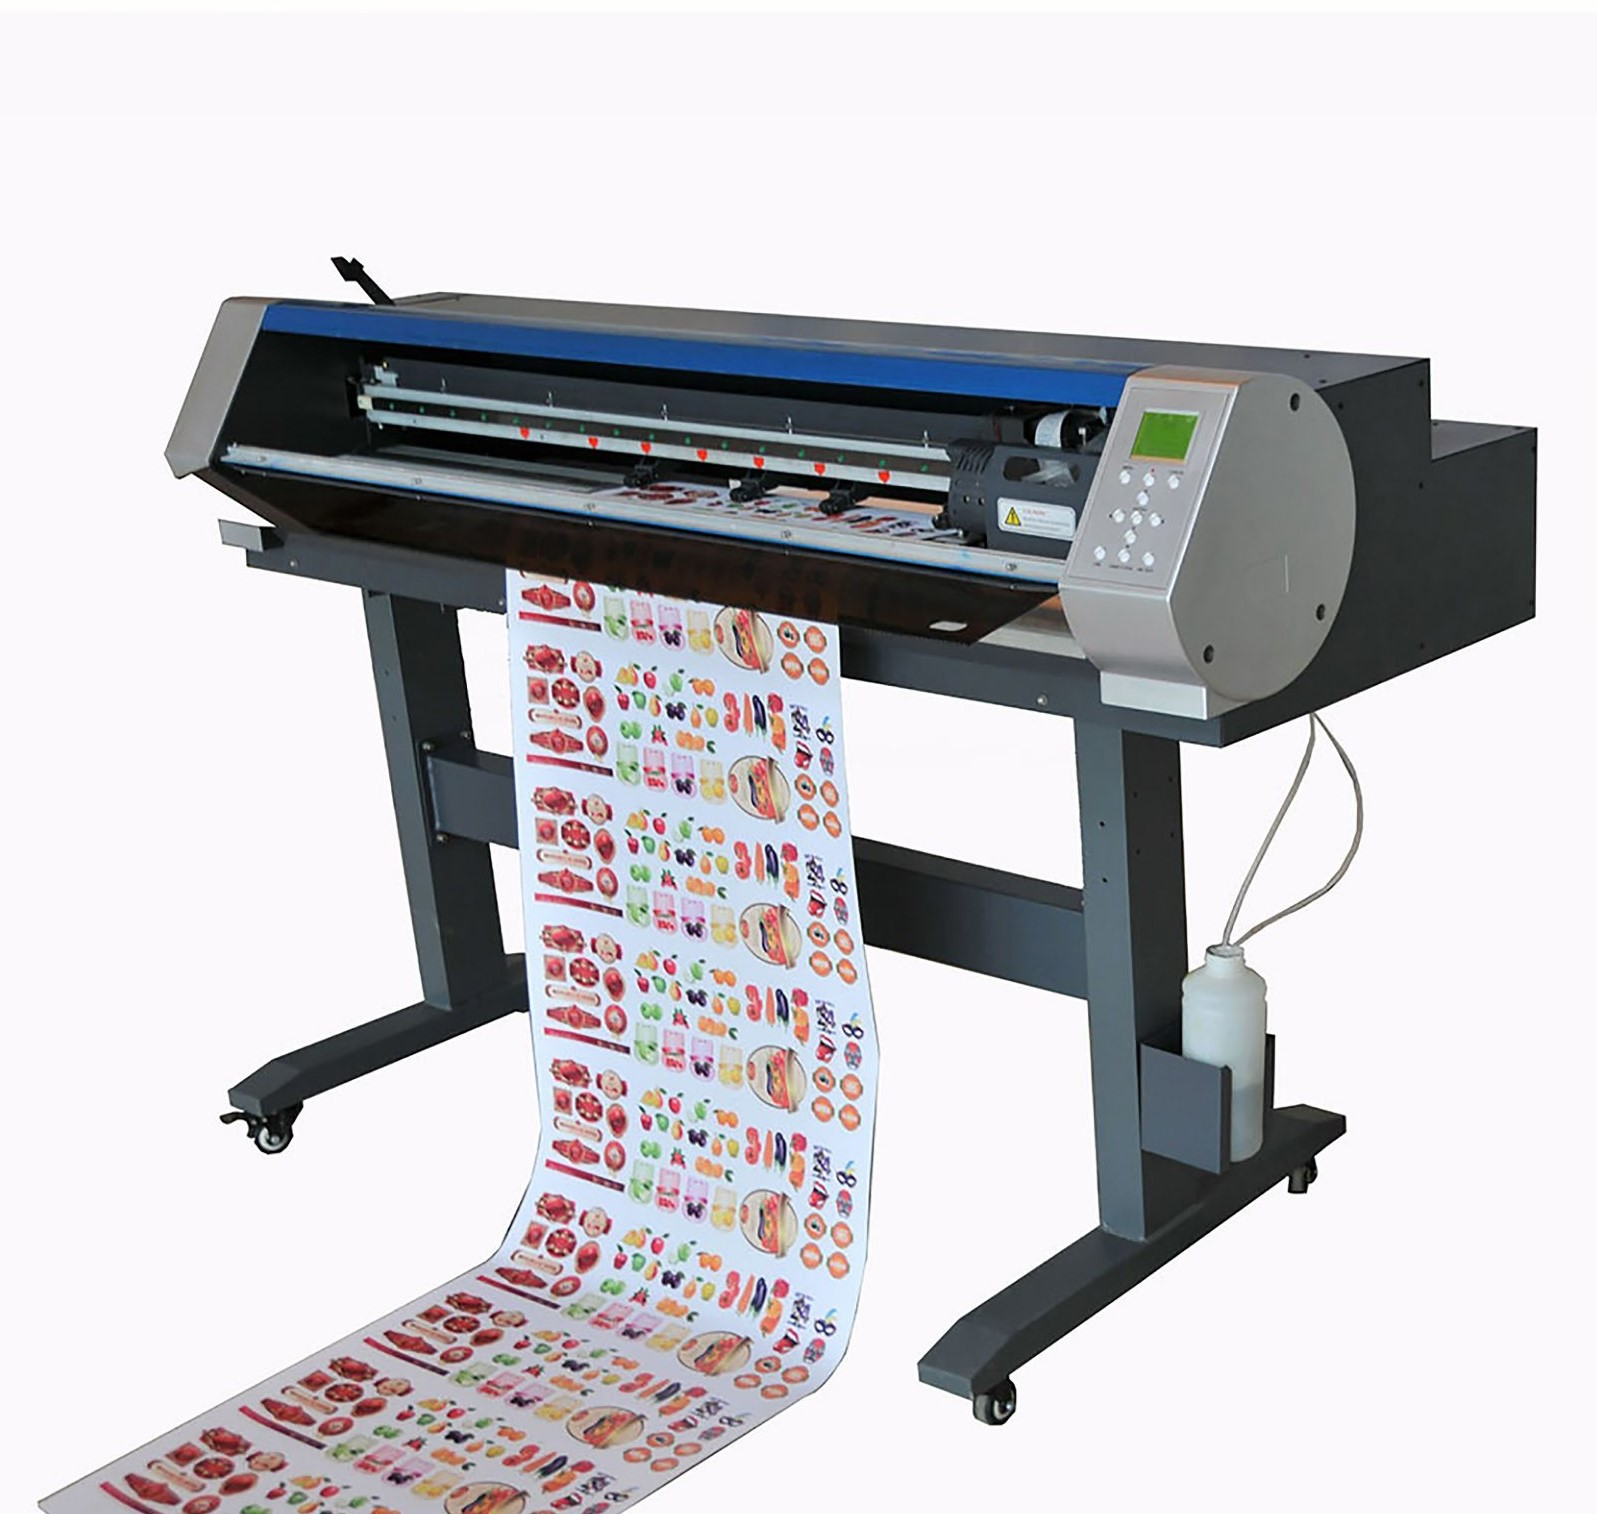 which sticker cutting automatic or manual?